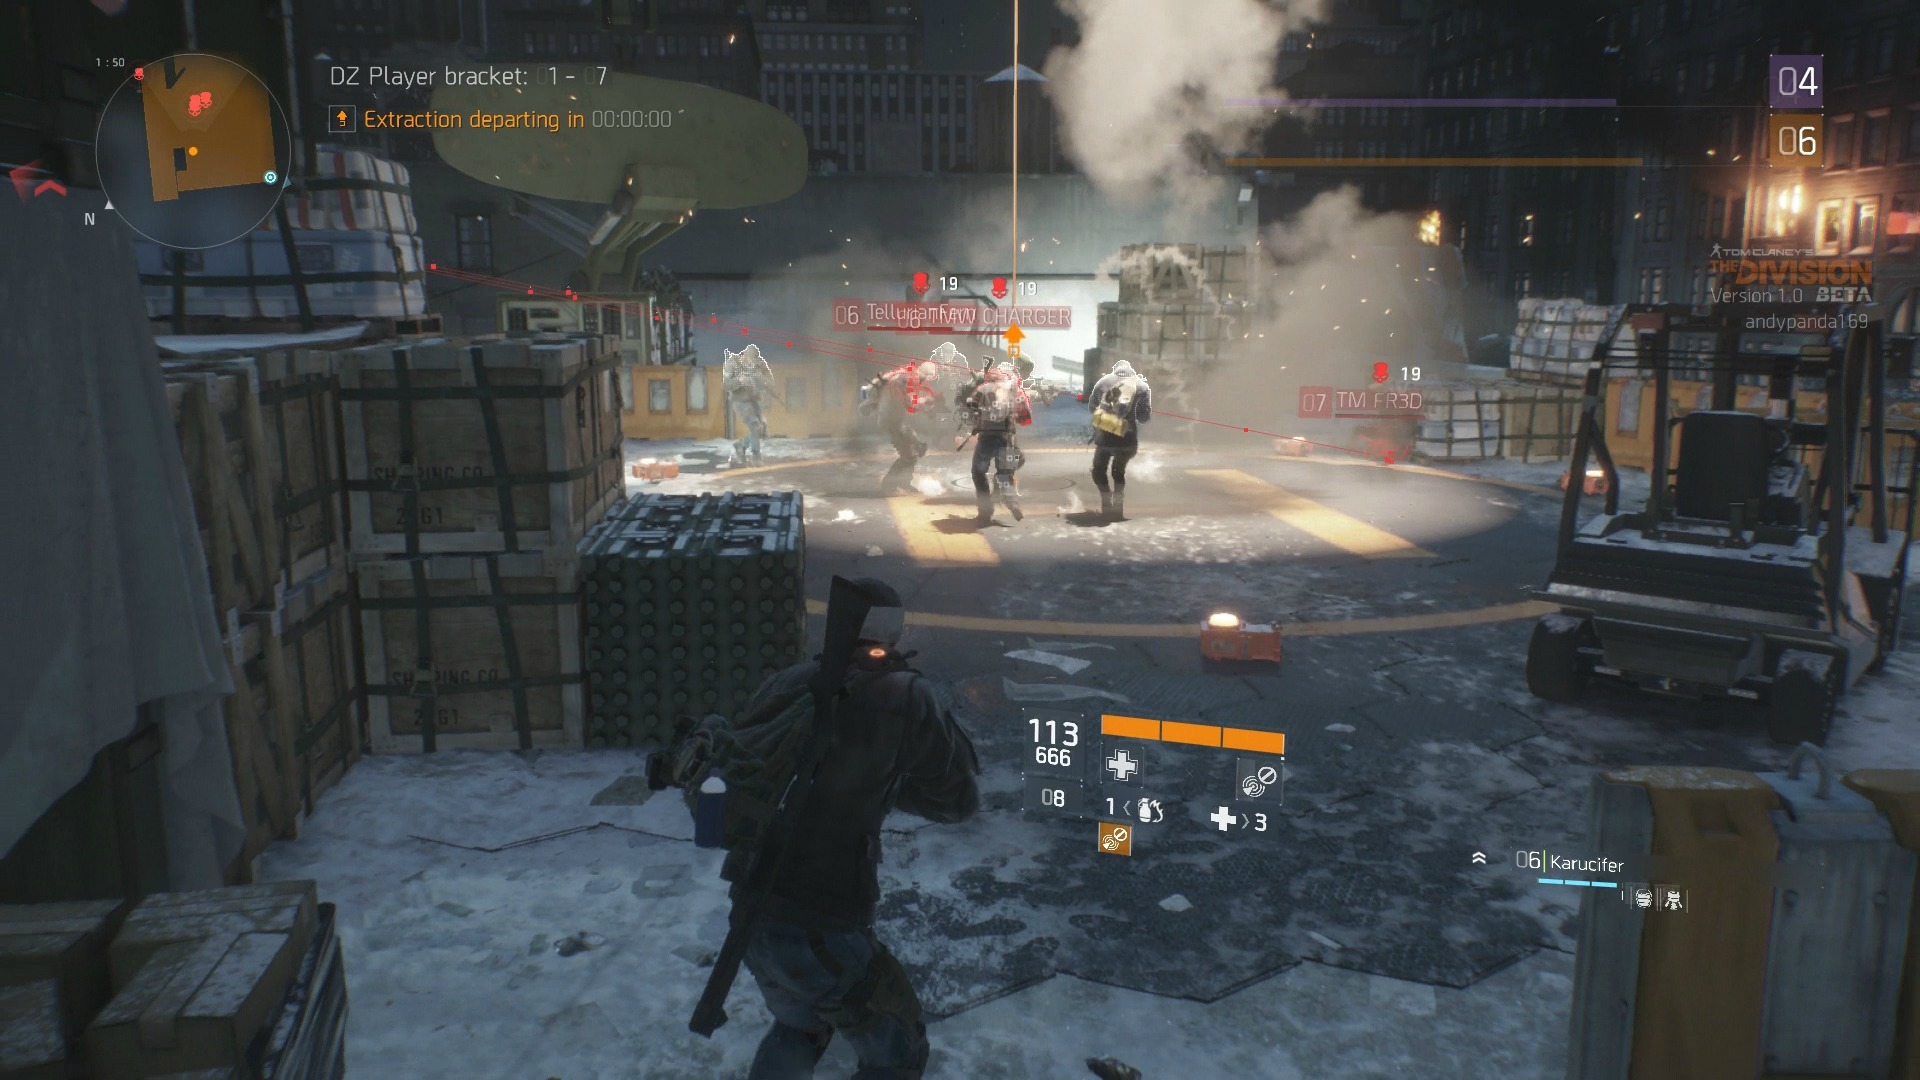 A Division agent watches other agents in the Dark Zone